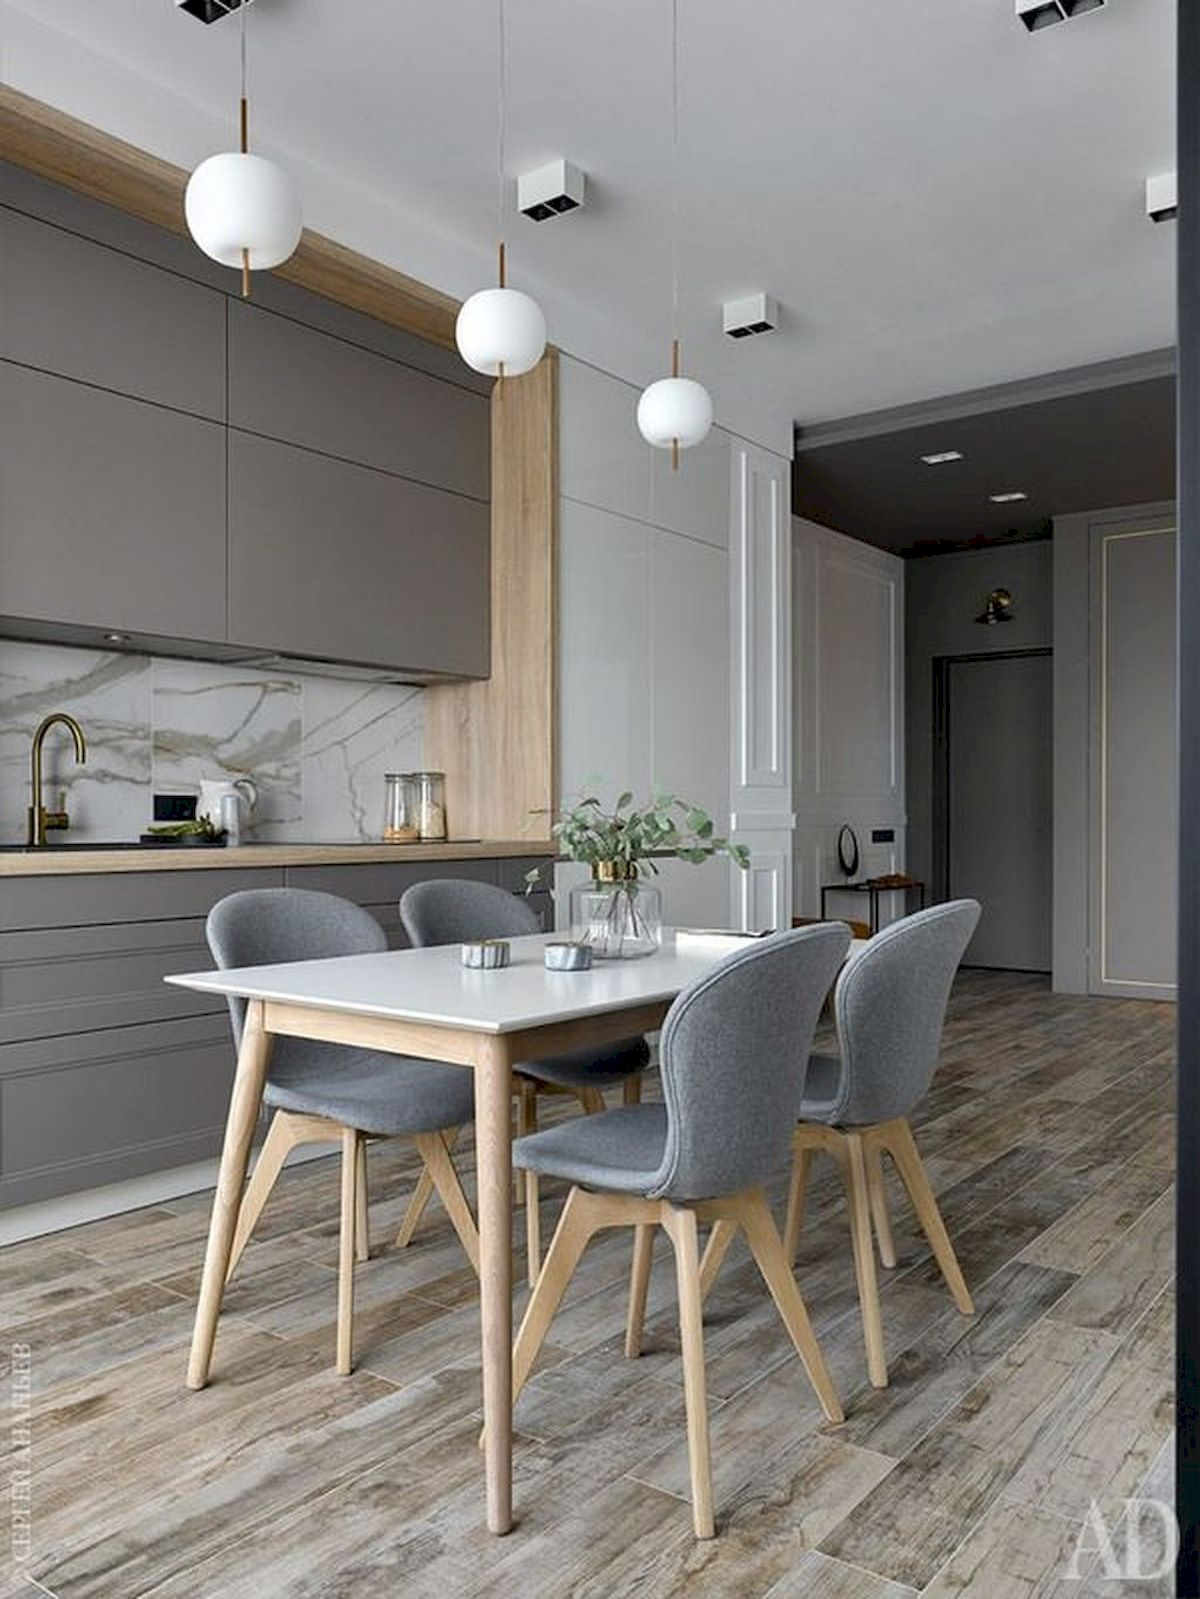 54 Premier Source For Affordable Dining Room Ideas On A Budget Yellowraises Dining Room Small Affordable Dining Room Modern Kitchen Design